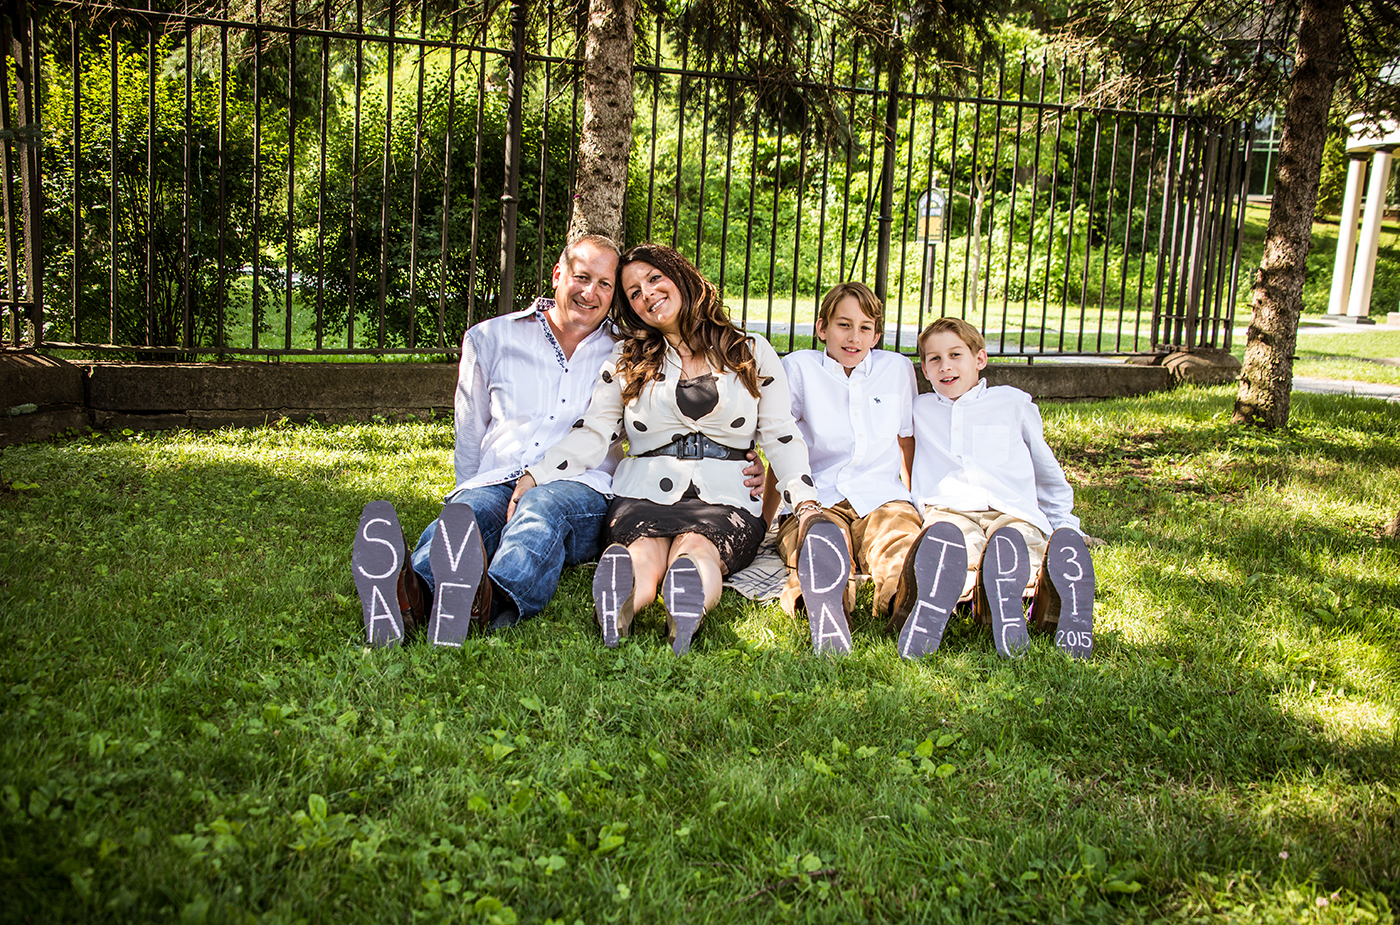 All Occasions Photography Albany NY - Engagement Photography Parents & Children Shoe Announcement